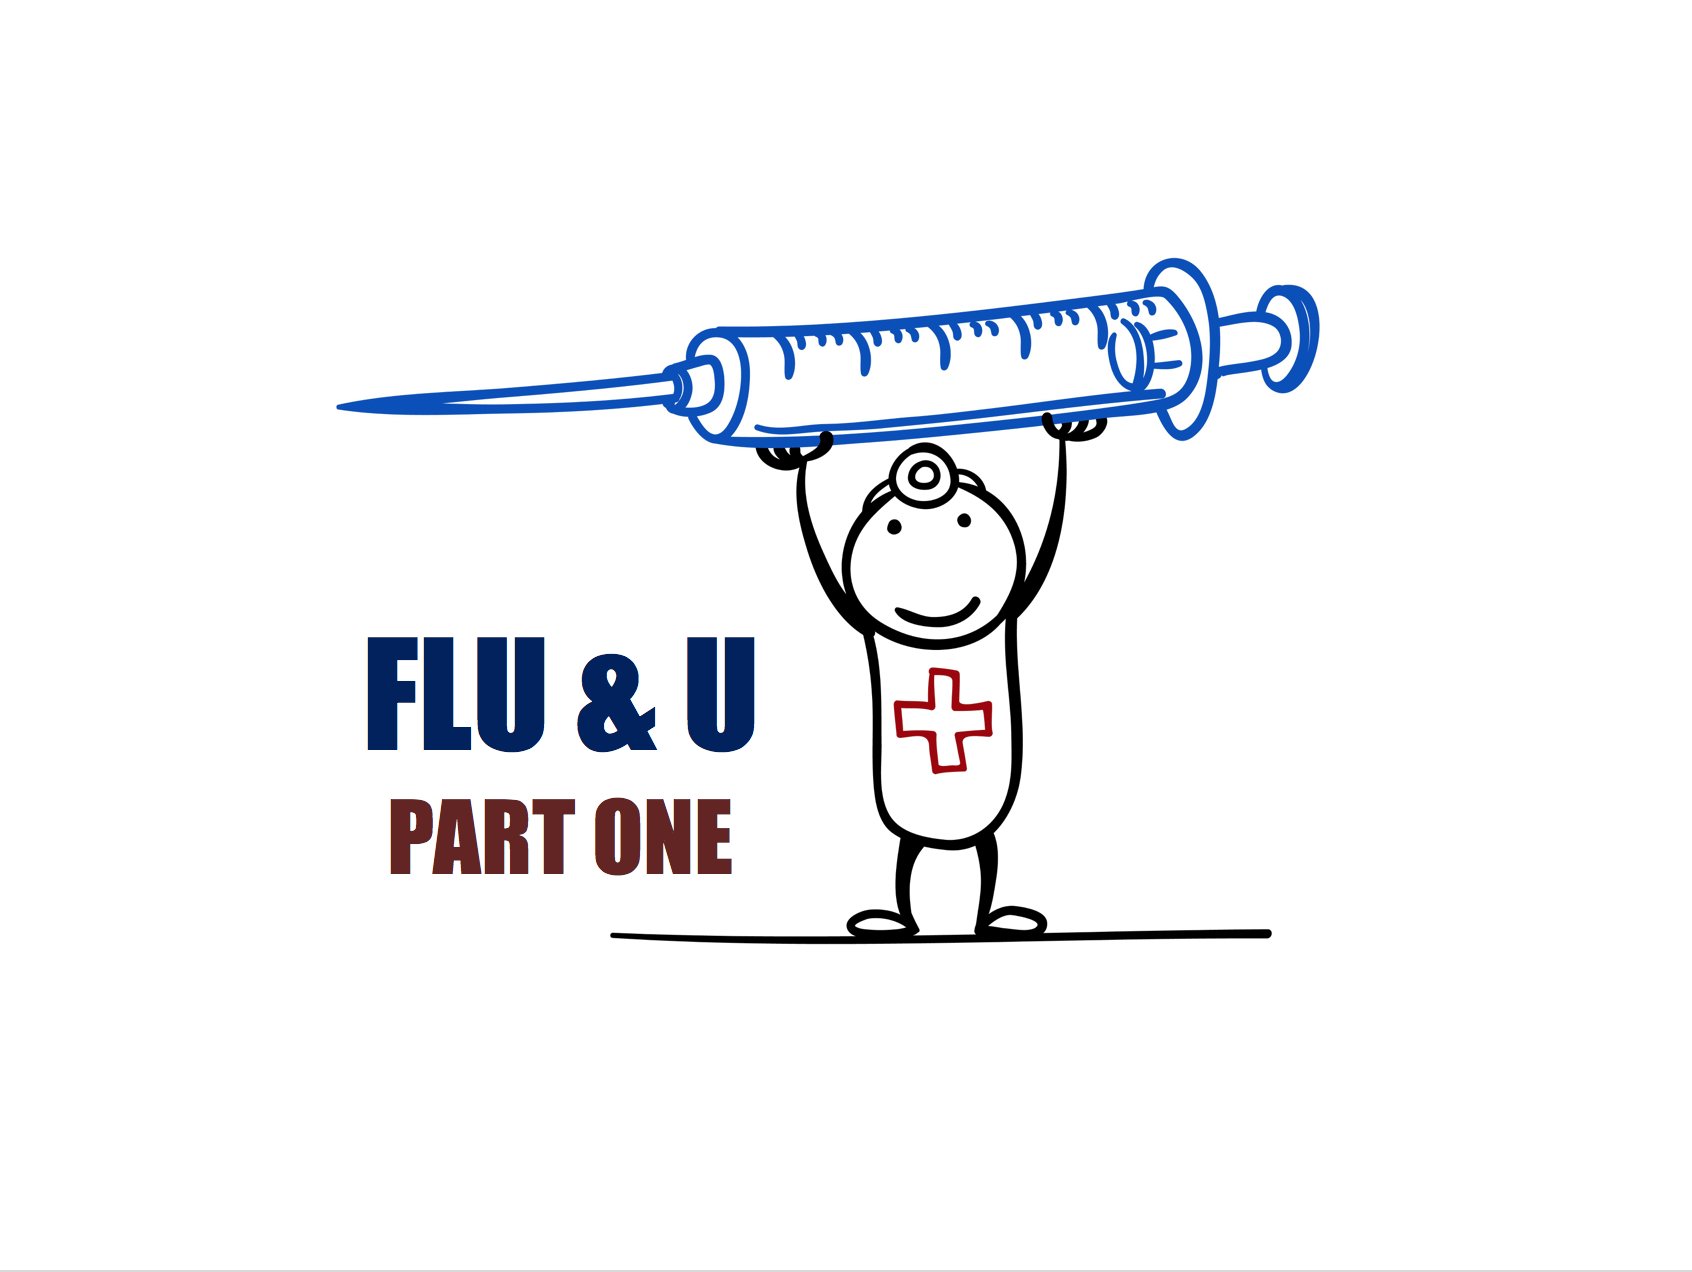 Flu & U: Part One